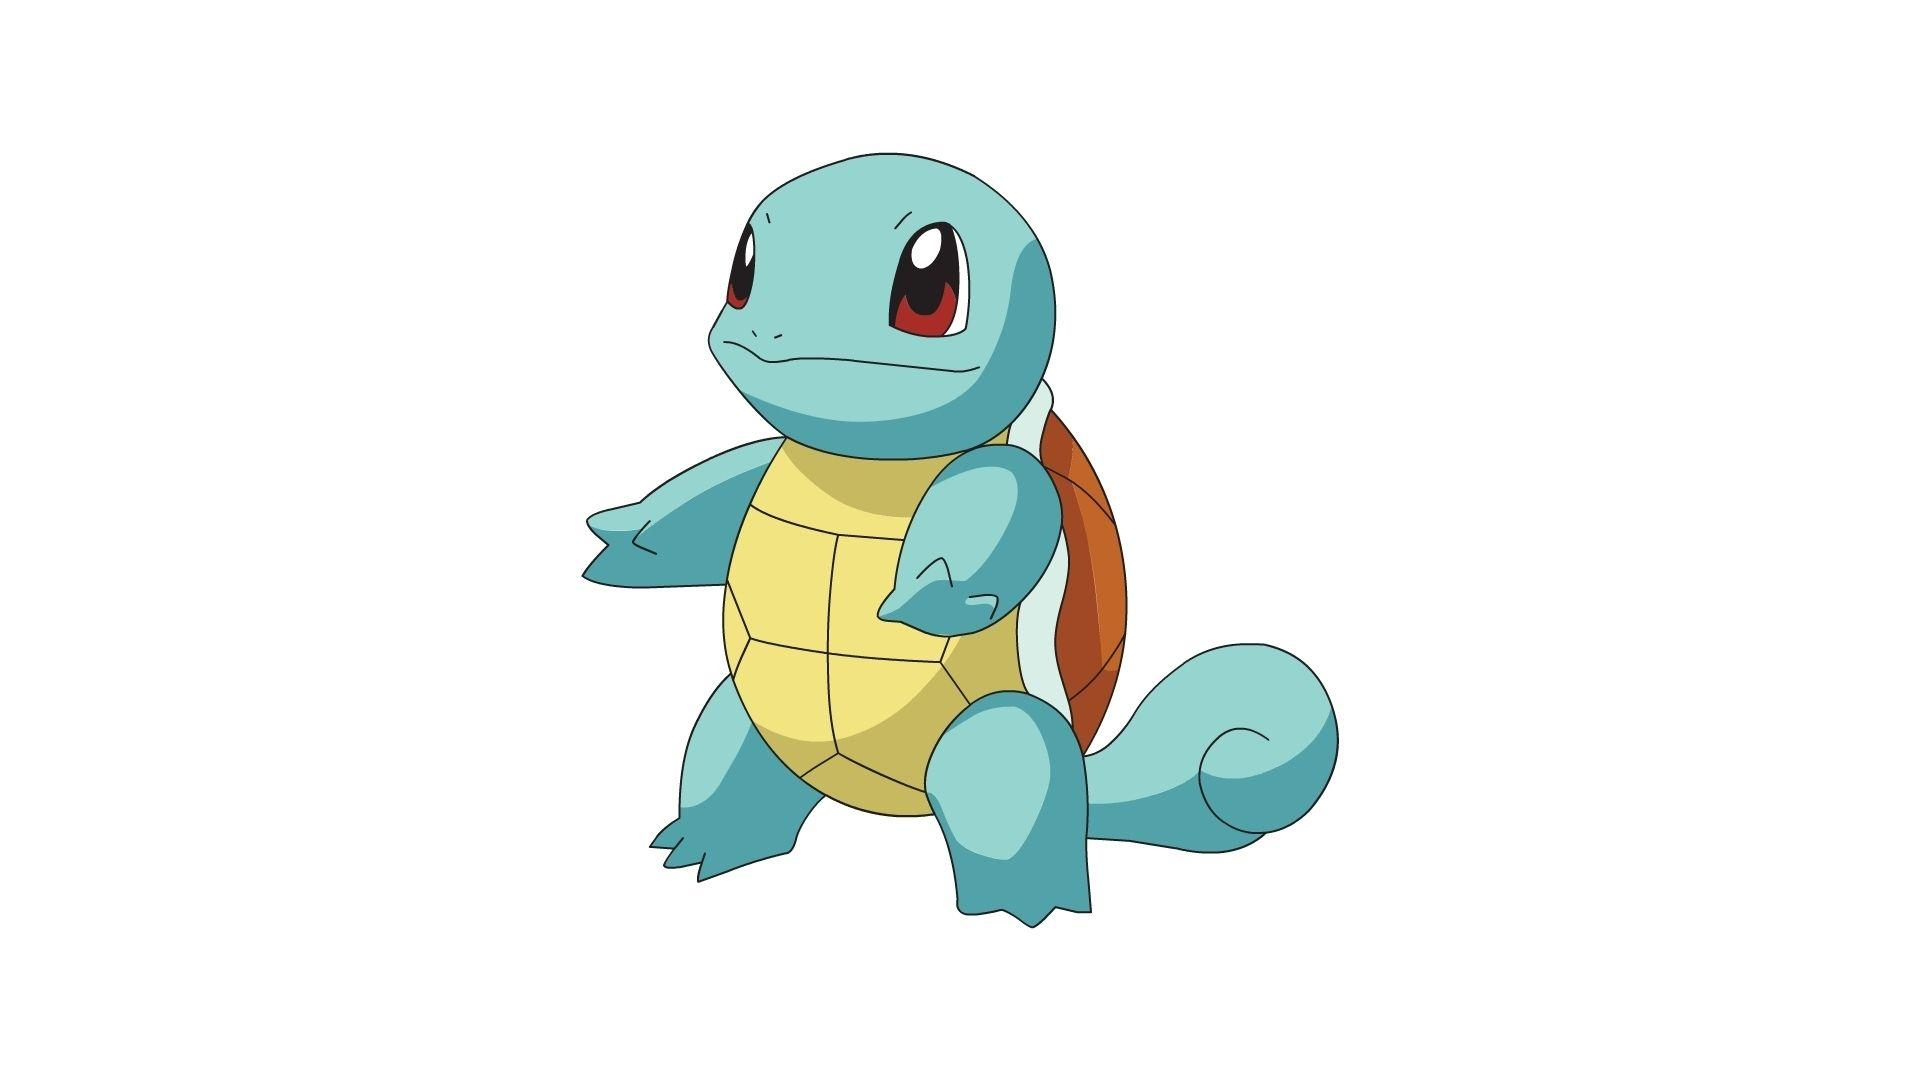 pokemon squirtle simple background white background 1920x1080 ...